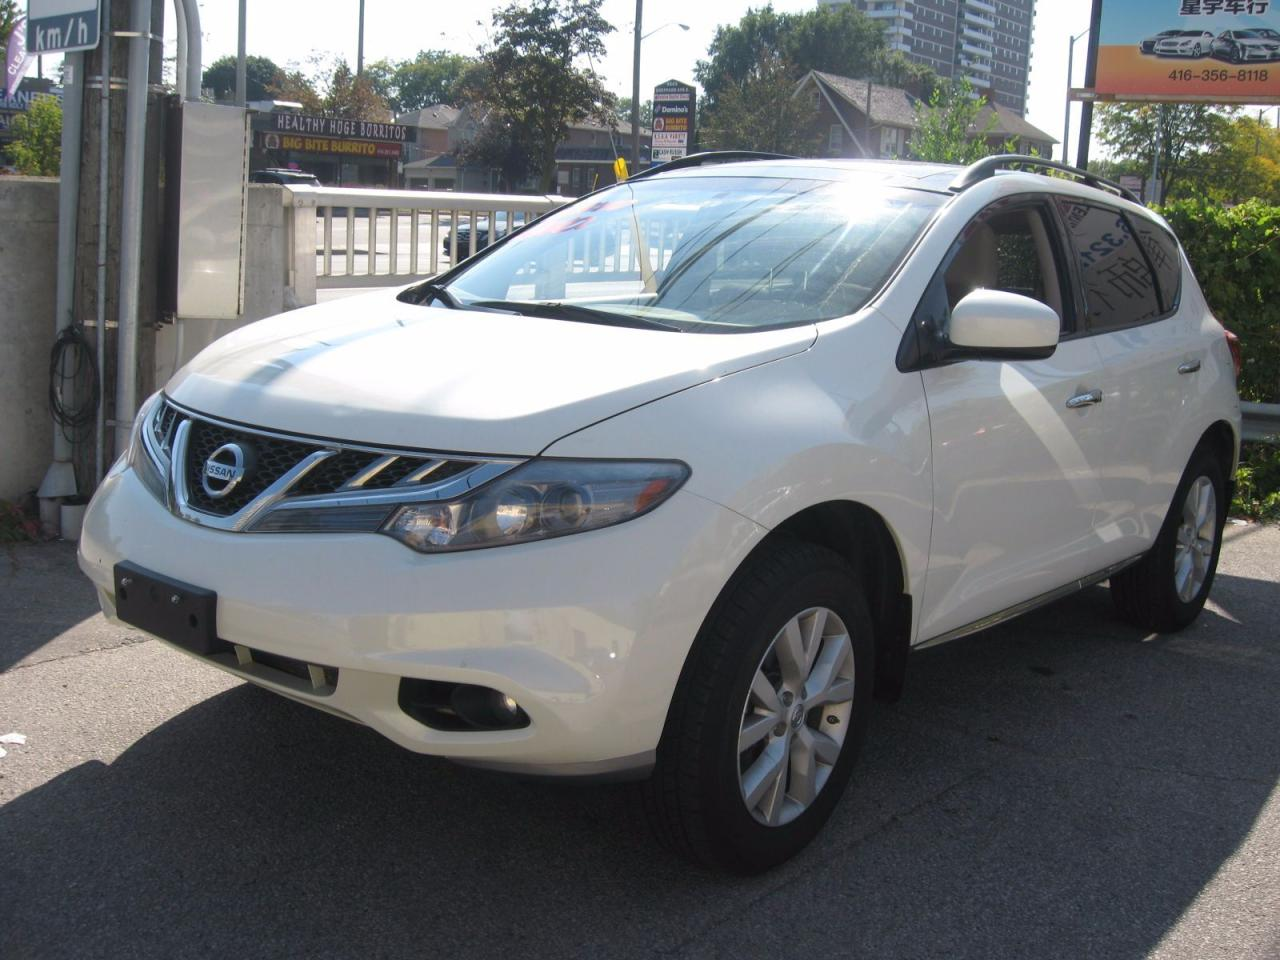 Used 2011 Nissan Murano Sv Awd For Sale In Scarborough